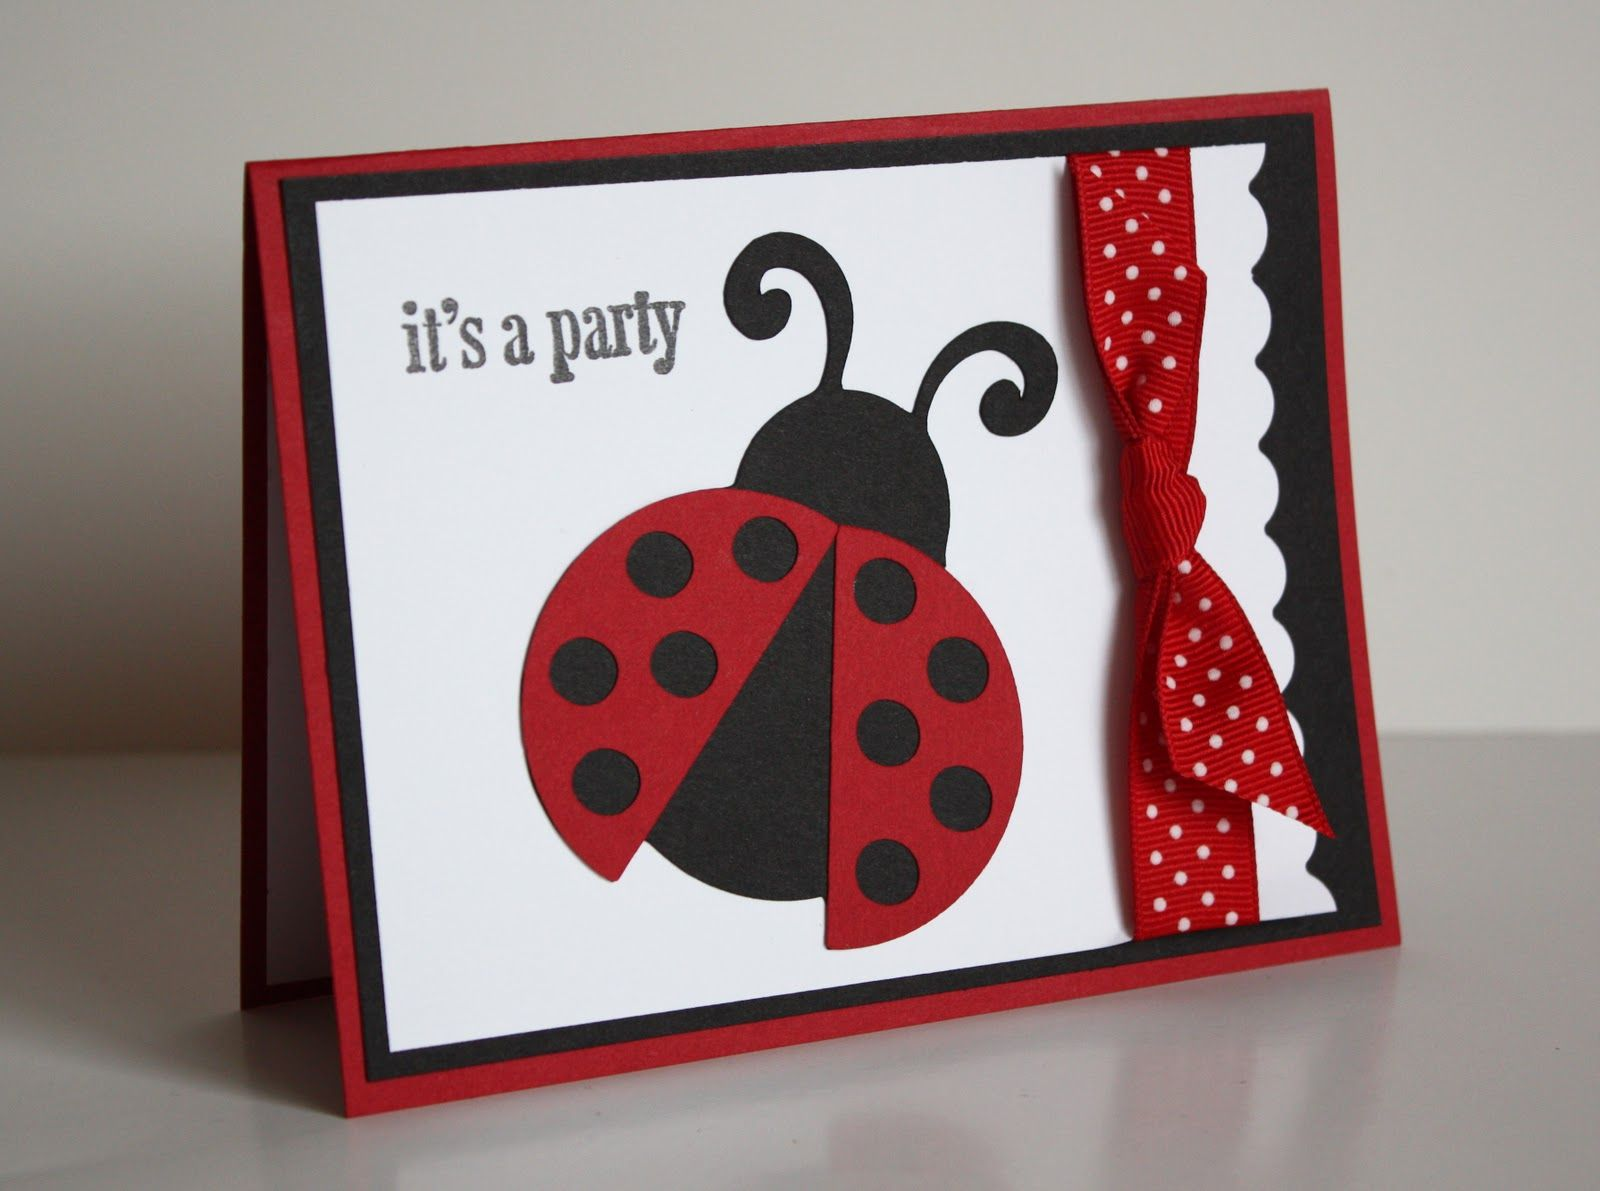 LADYBUG-RED-BABY-SHOWER-BIRTHDAY-CAKE-TOPPER-DECORATION-FAVOR ...